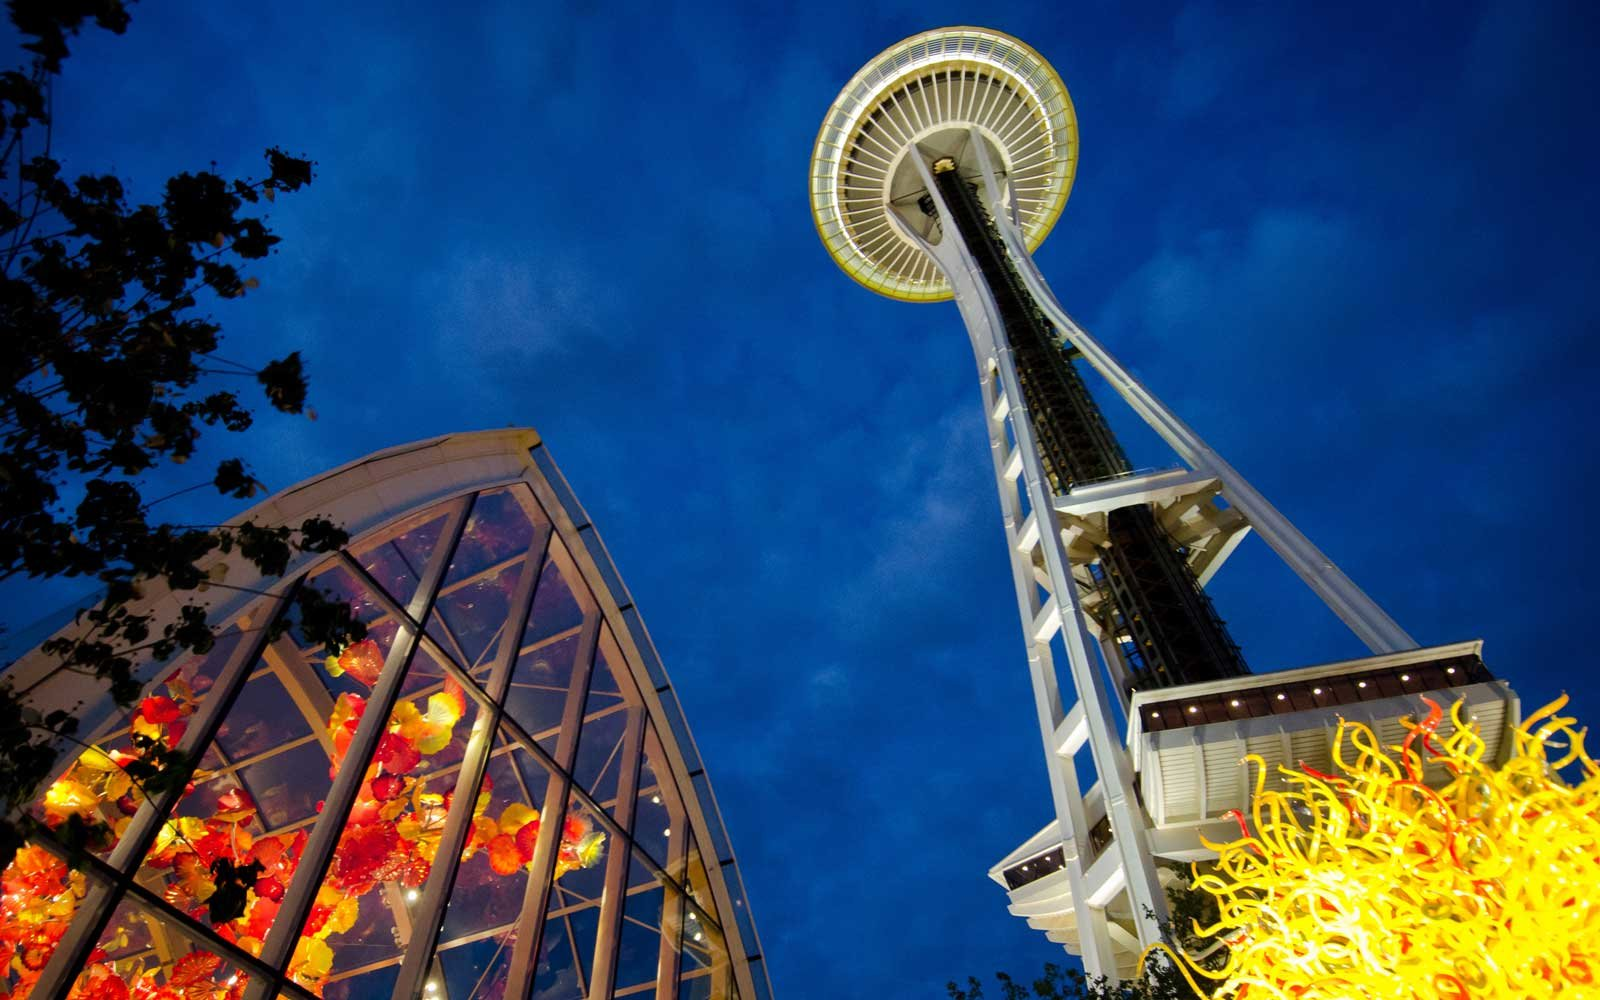 Chihuly Sculptures and Seattle's Space Needle